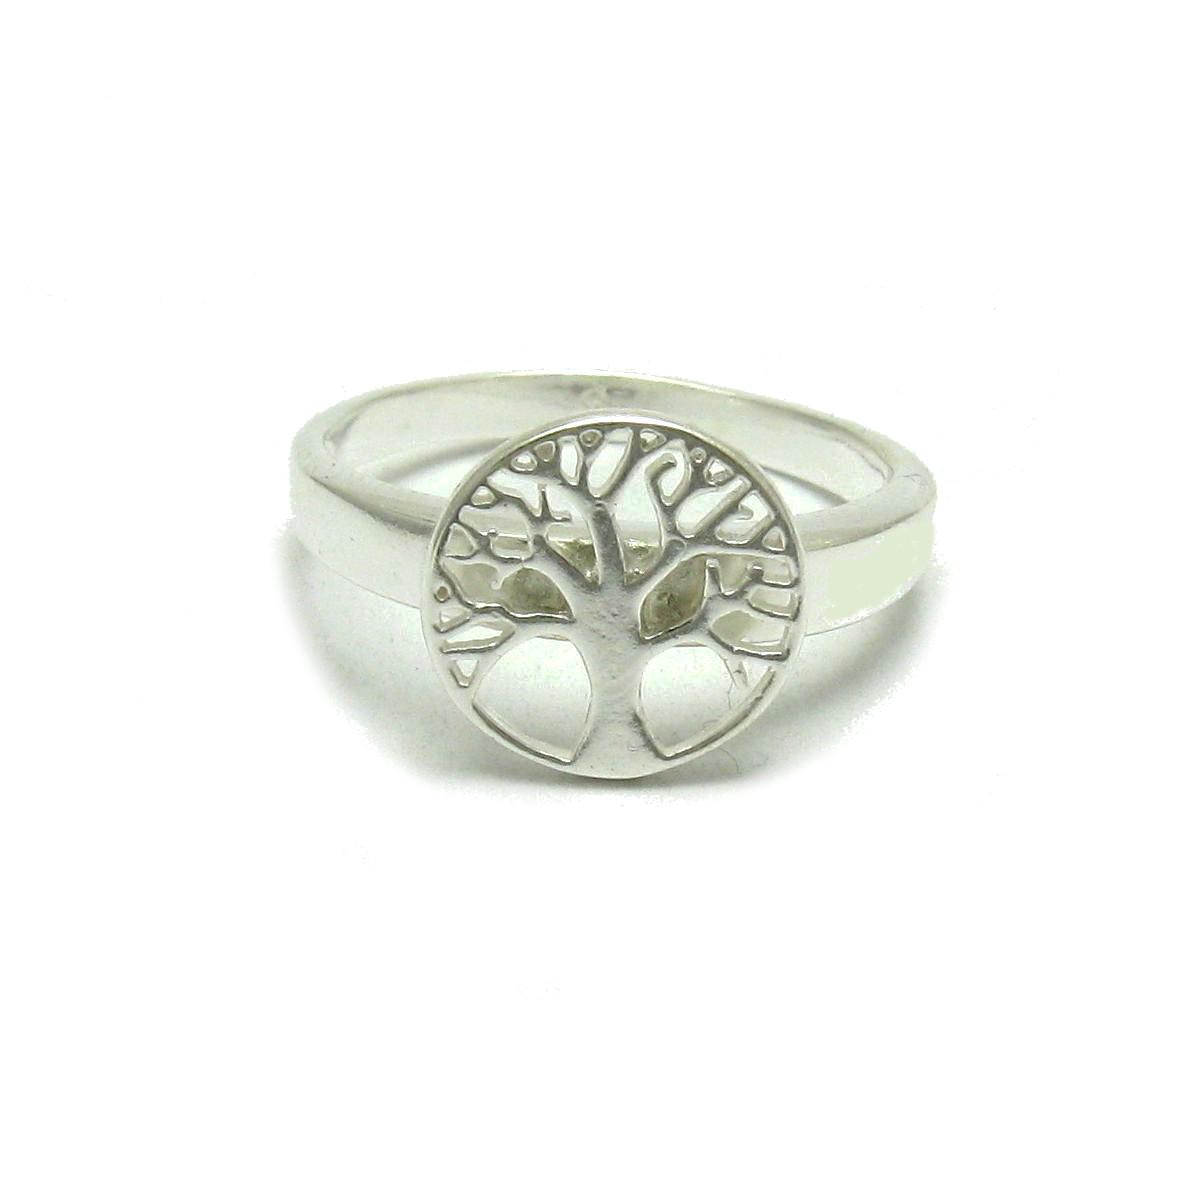 Silver ring - R001692